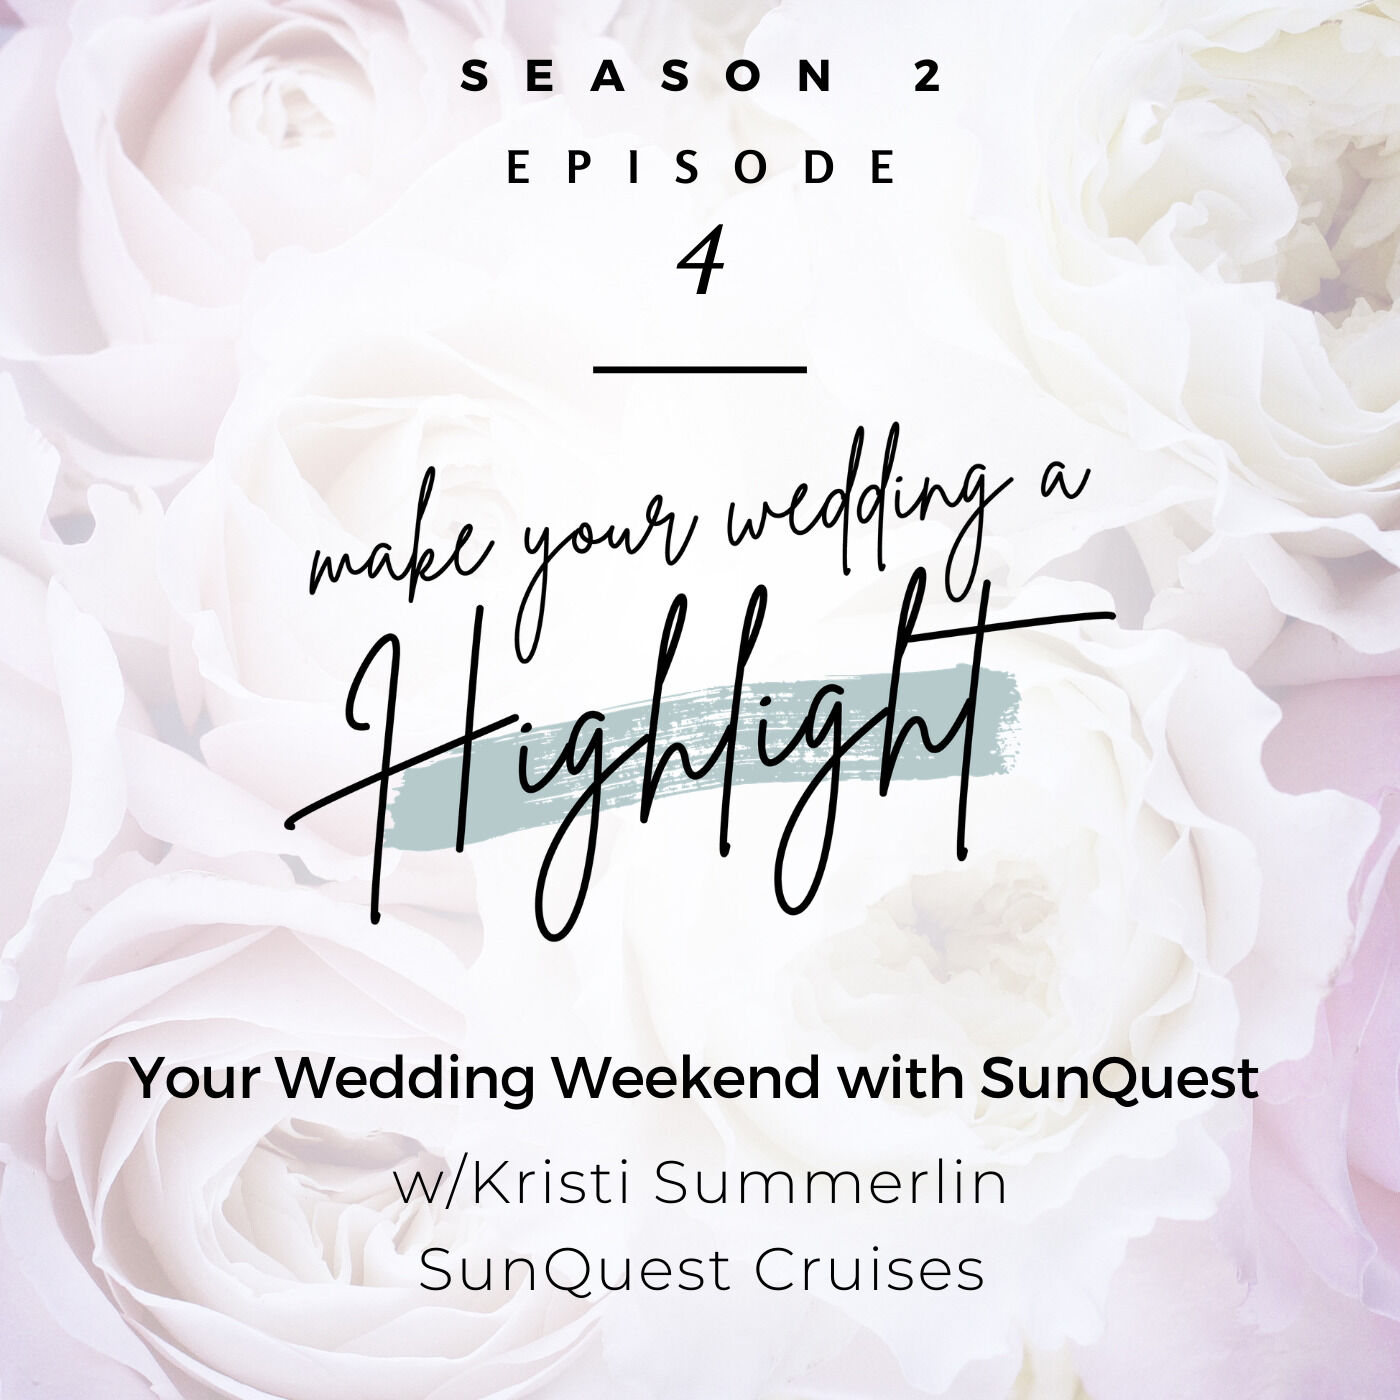 Your Wedding Weekend with SunQuest